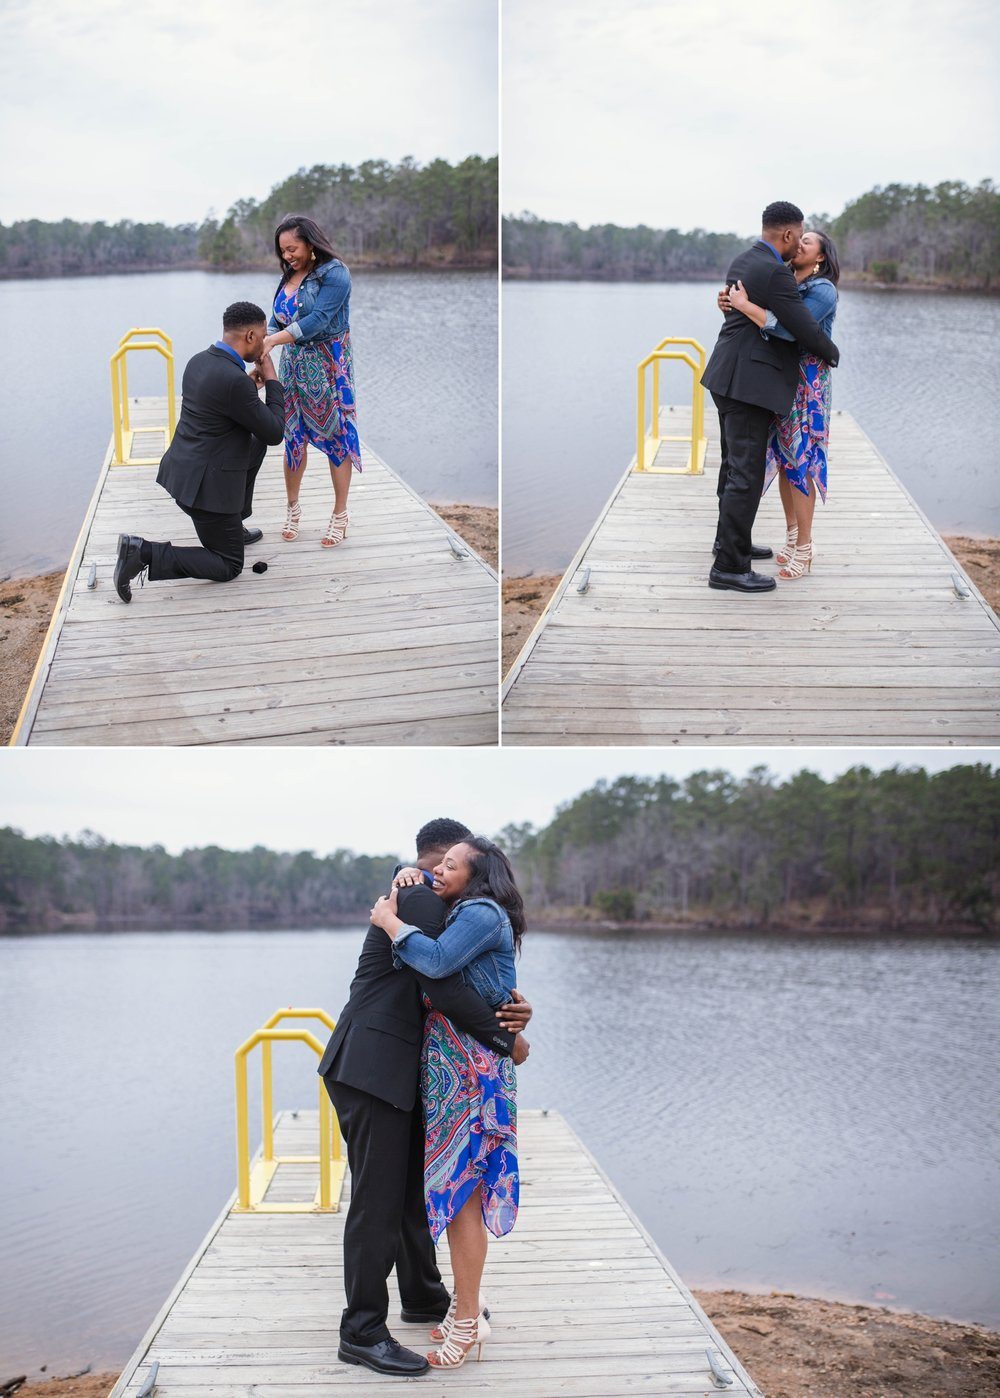 Surprise Proposal at Lake Rim - Fayetteville North Carolina Engagement Photographer